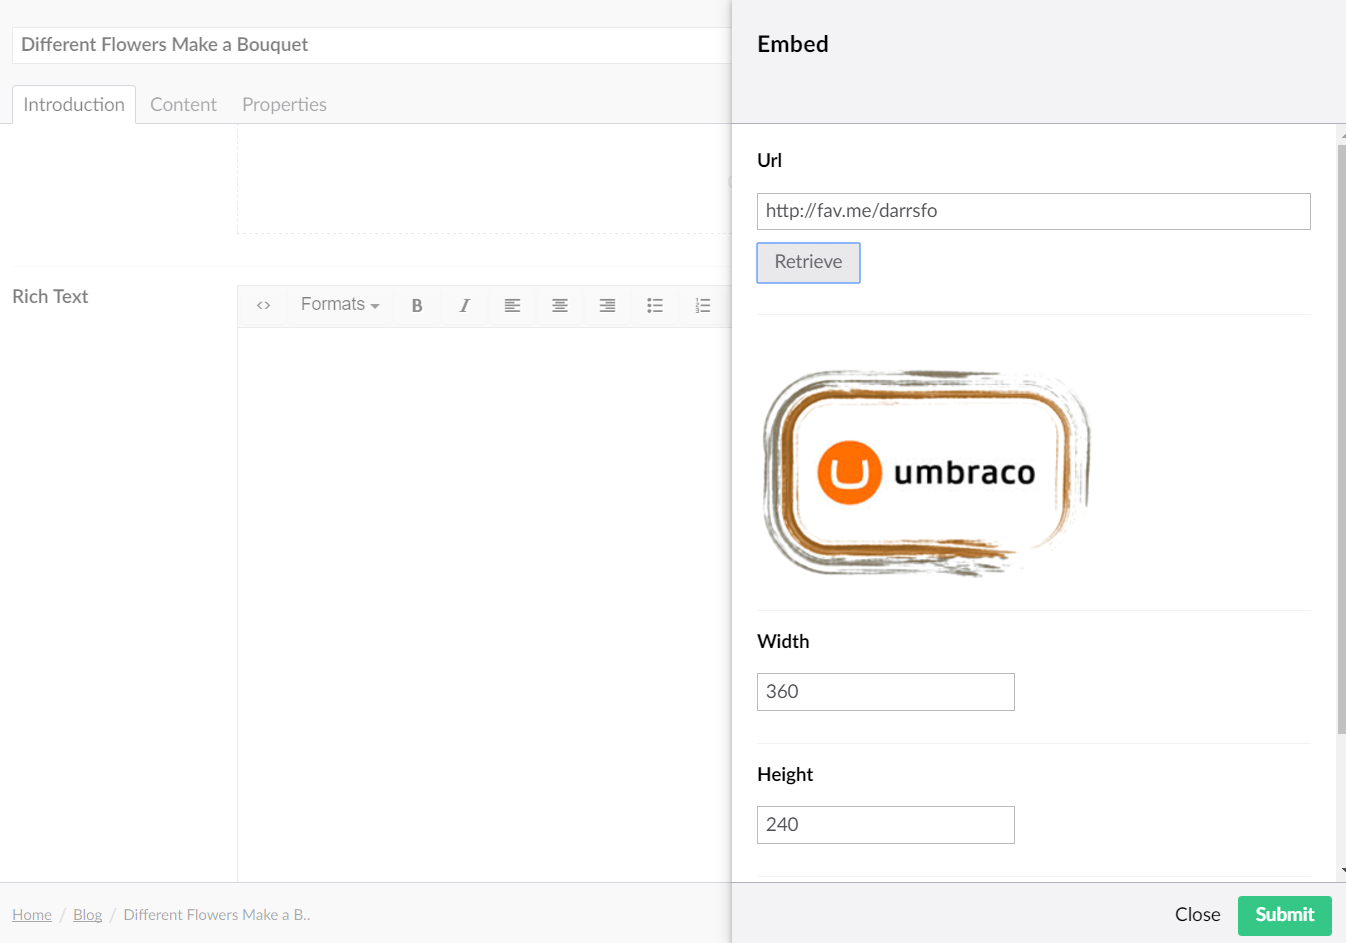 Embedded Media Provider, Extending - Our Umbraco